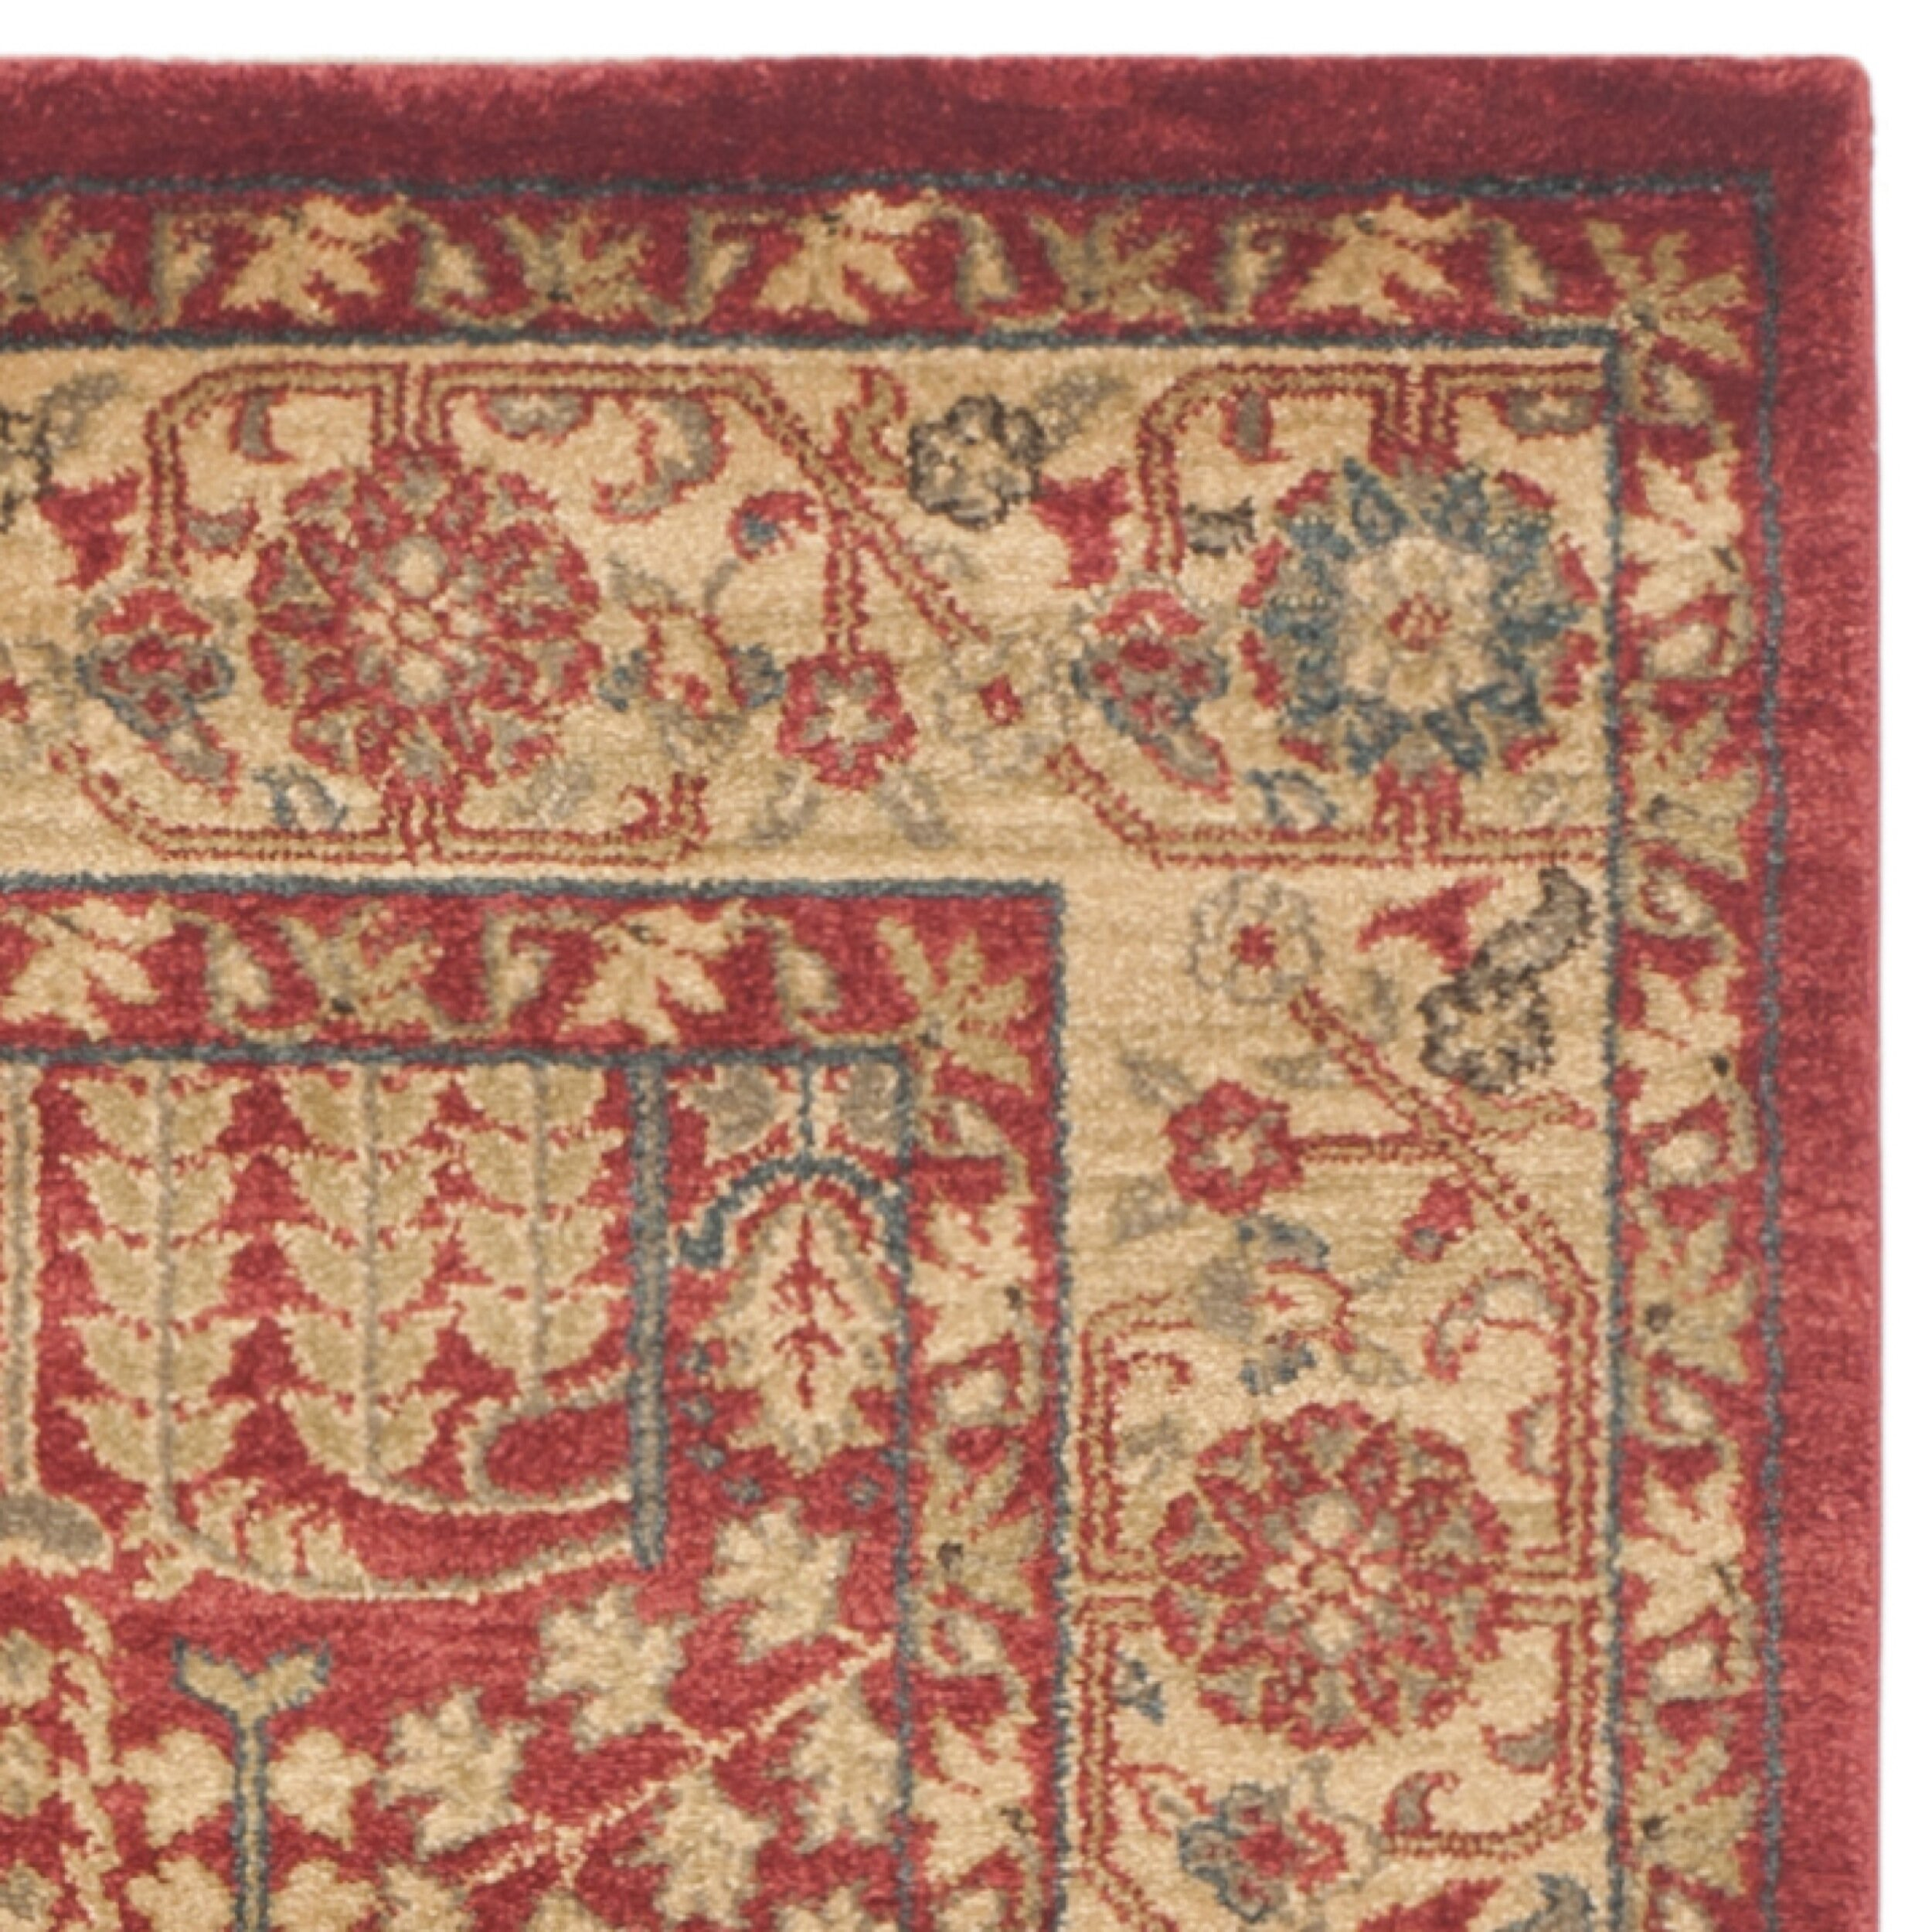 Safavieh Mahal Red/Natural Area Rug & Reviews